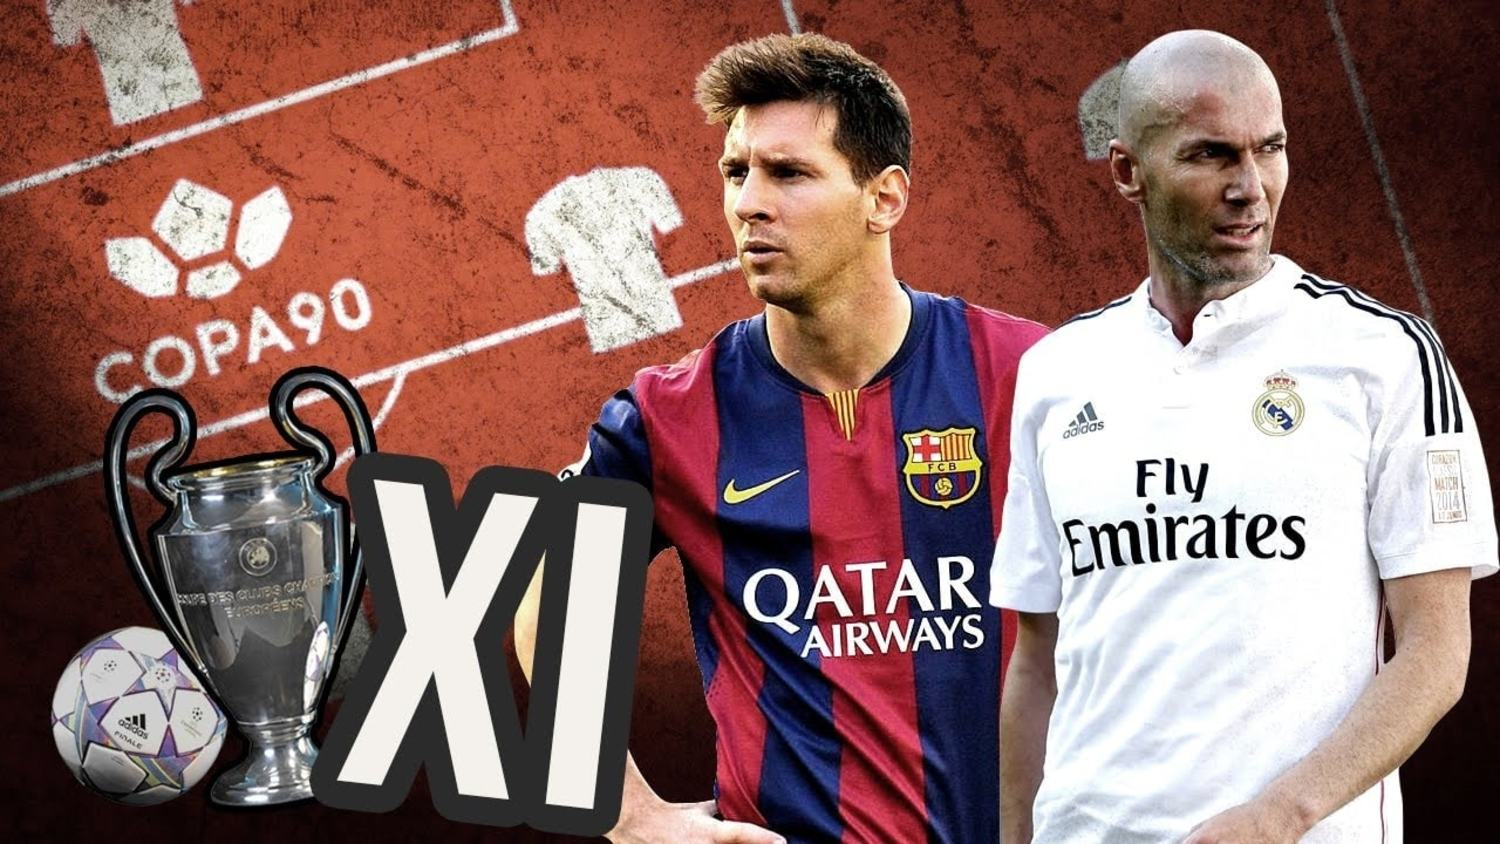 The All-Time Champions League XI ft. Messi, Ronaldo, Lahm & more!